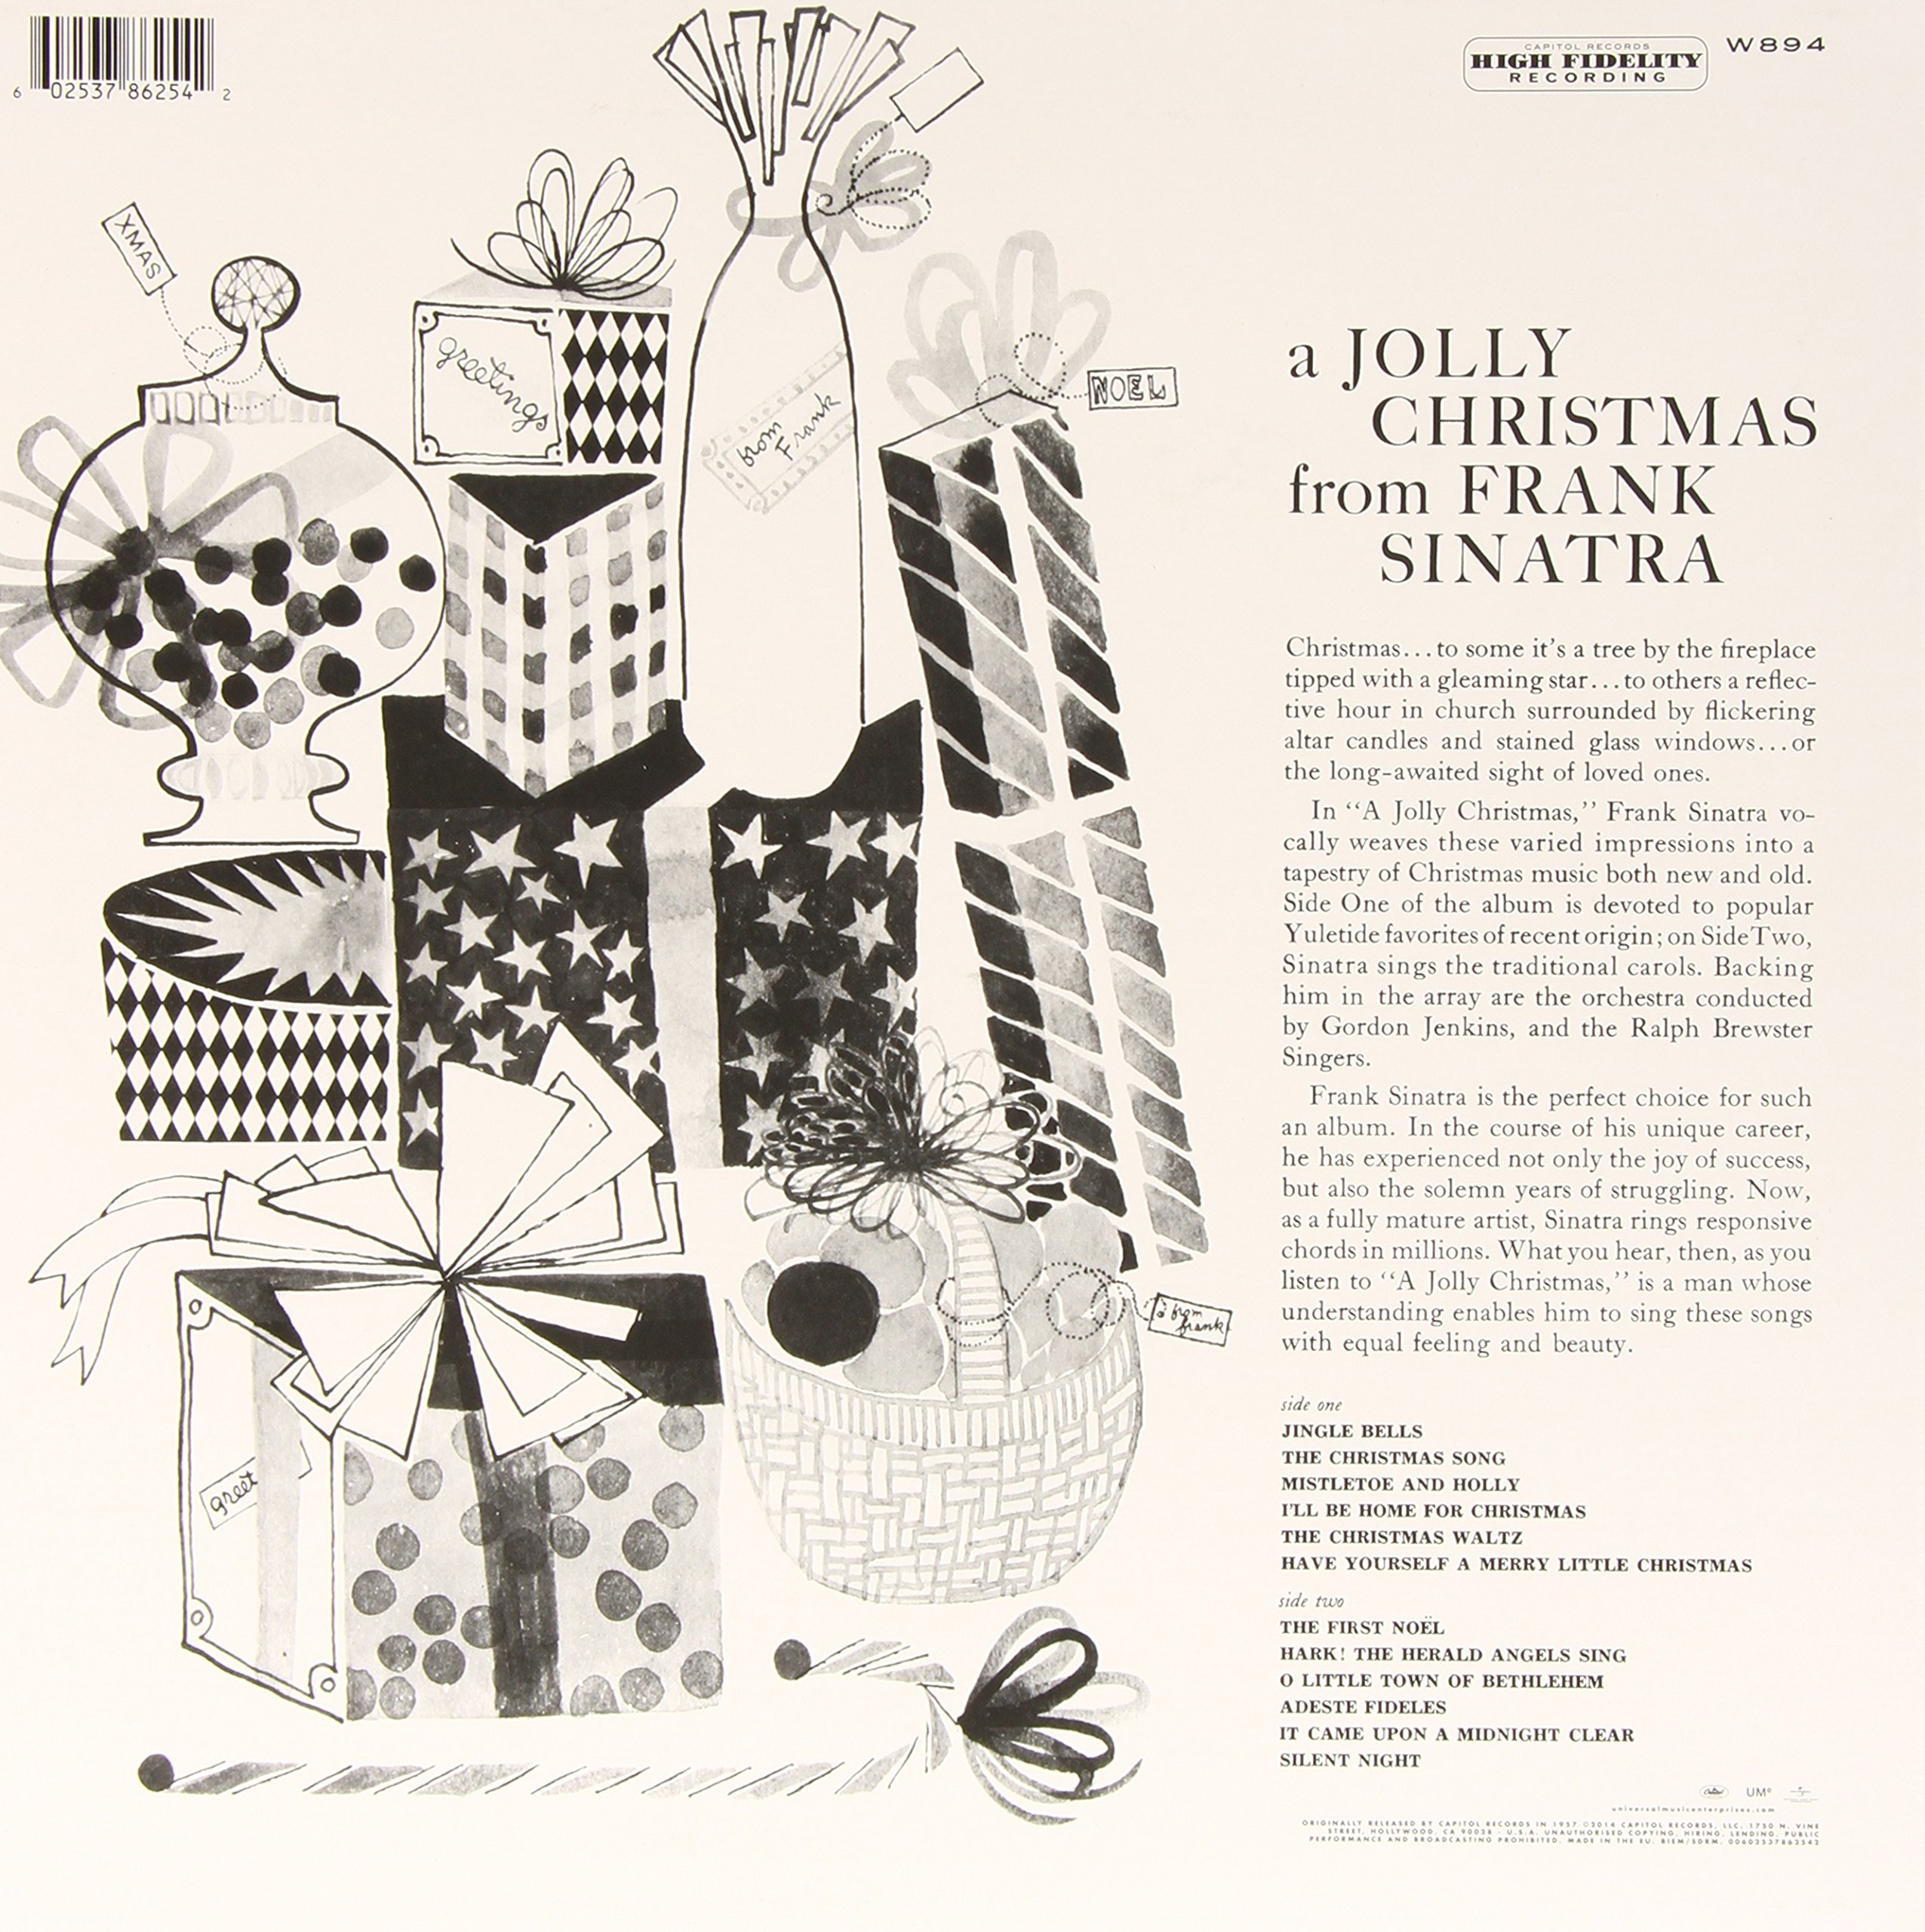 A Jolly Christmas From Frank Sinatra [LP] by Capitol Records